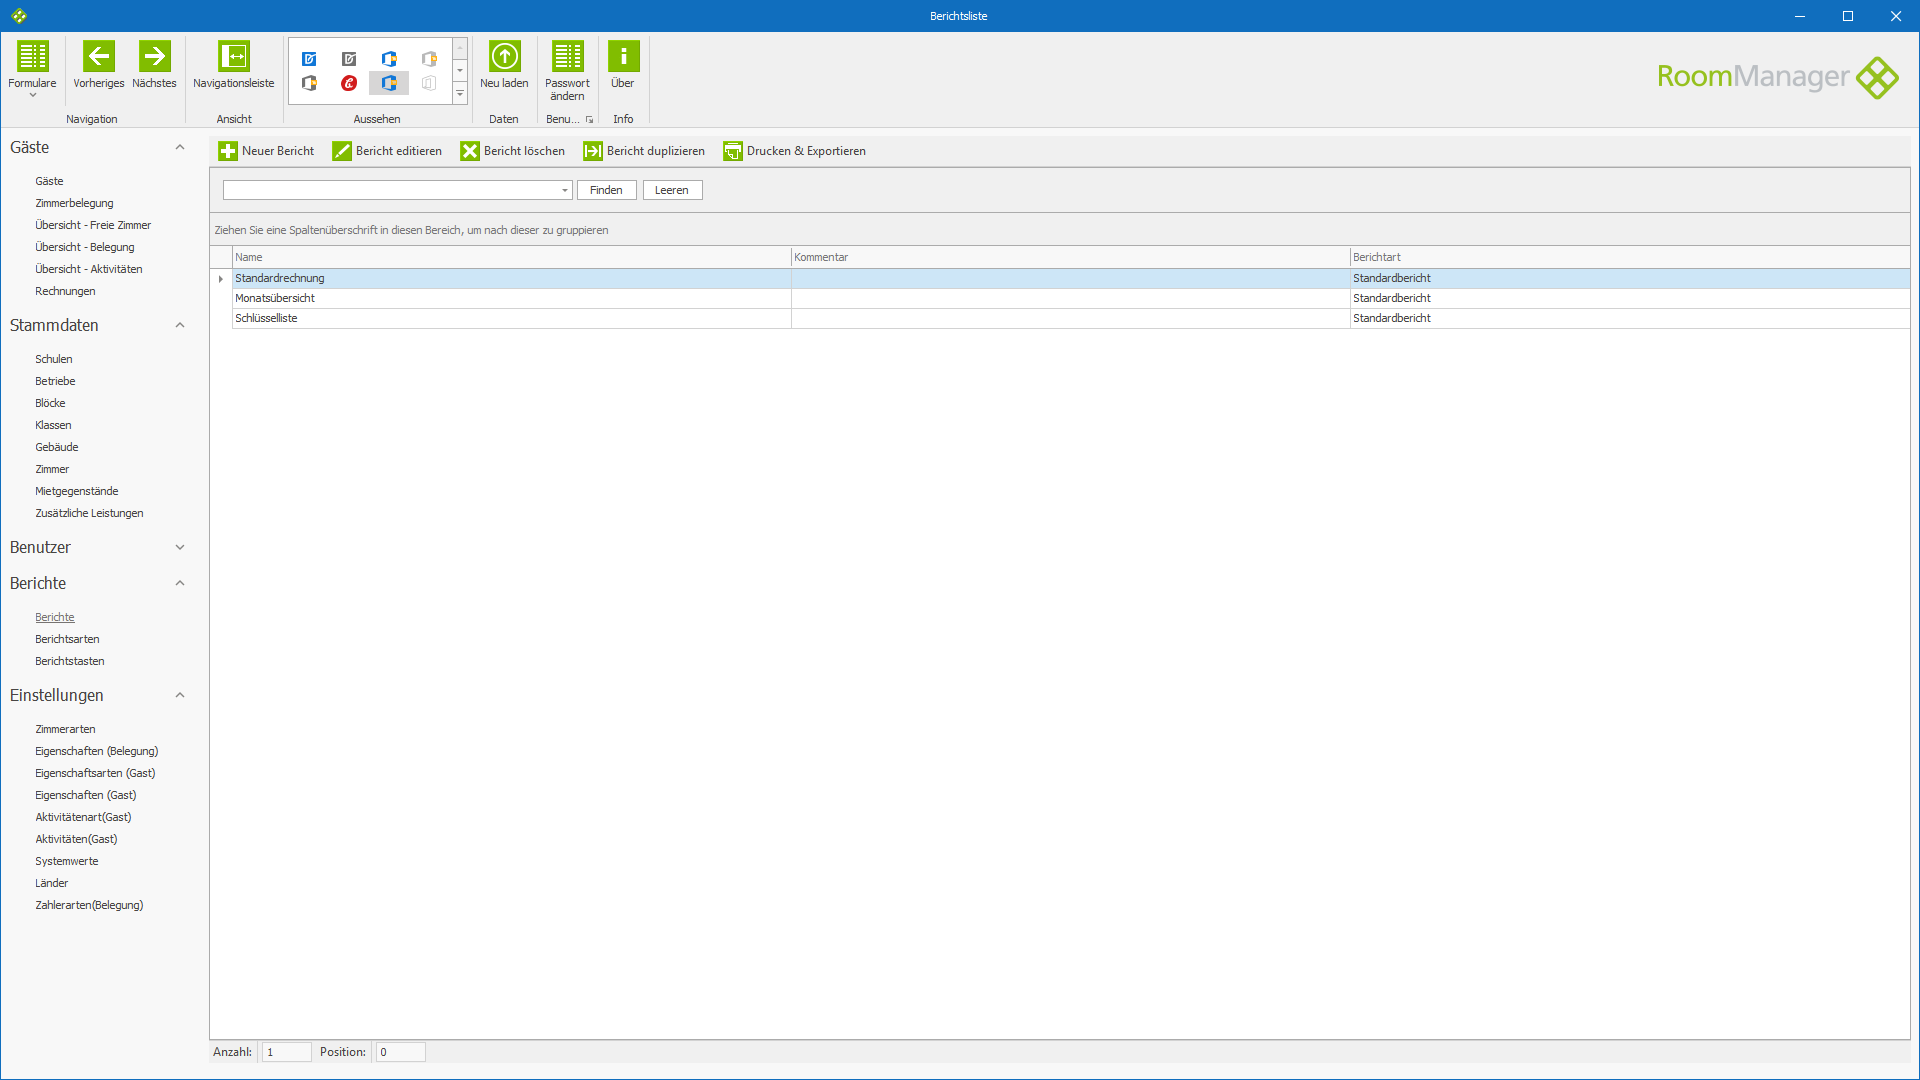 Wohnheimverwaltung -  Hospitality Management - RoomManager - Software Screenshot #2